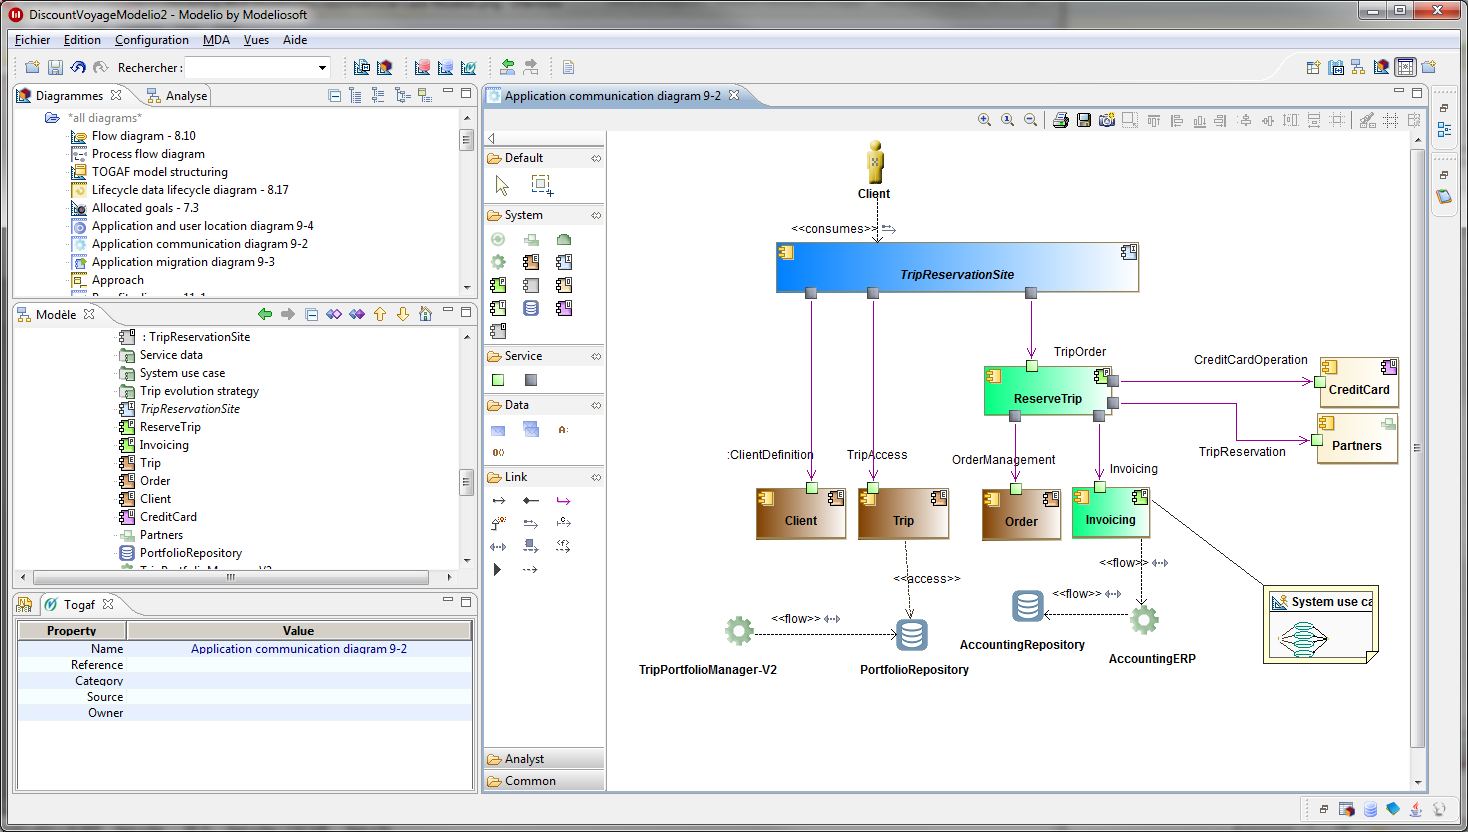 Amazing SOA Architecture Modeling (using The TOGAF Architect Module) ArchiMate View